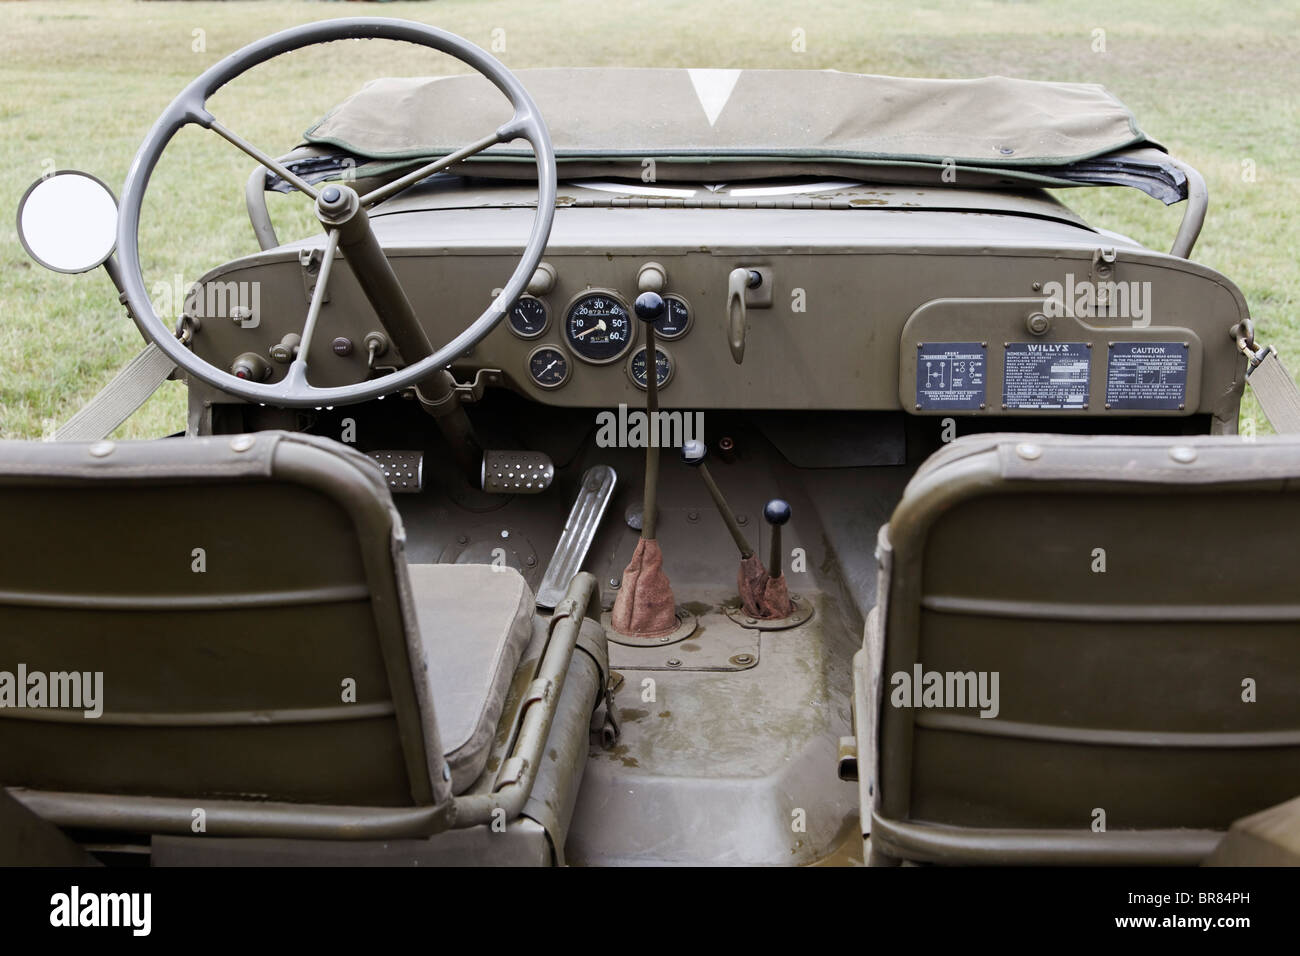 gear ratio diagram ecg limb lead placement willys mb us army quarter ton selectable 4x4 dual jeep stock photo: 31526841 - alamy